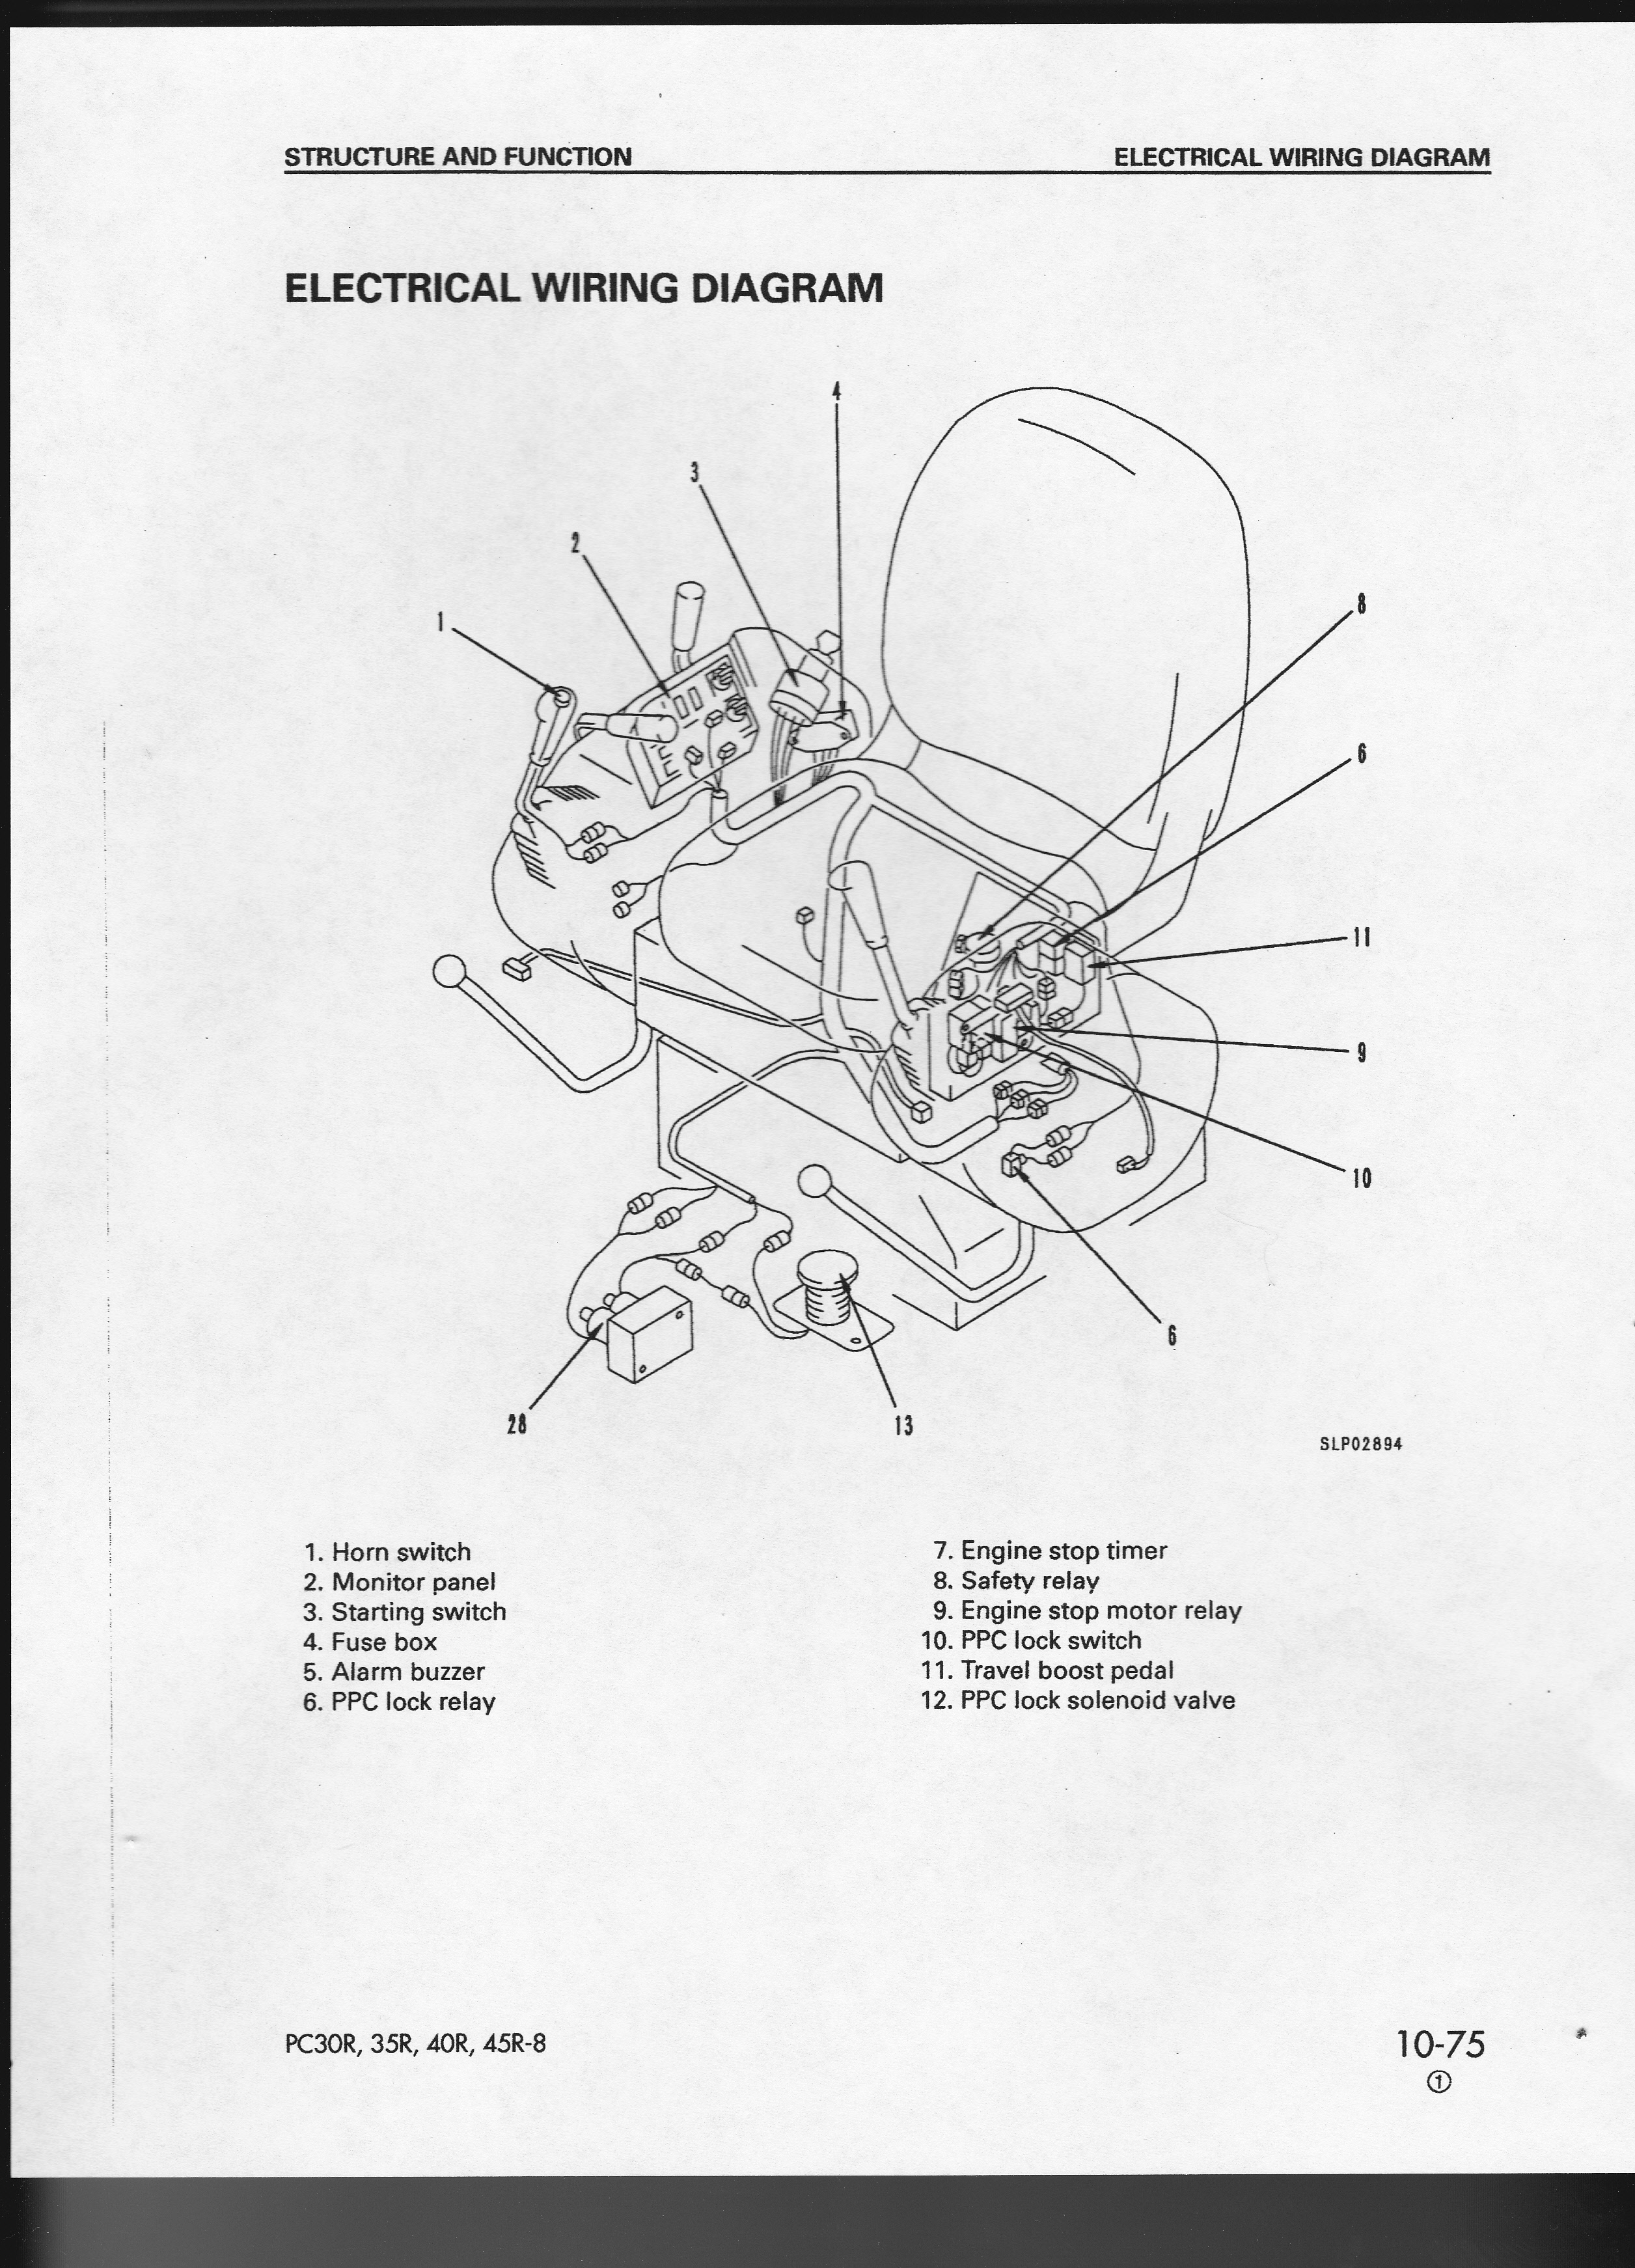 komatsu wiring diagram wiring diagram and schematic o i have a komatsu d 20a dozer late last fall starting